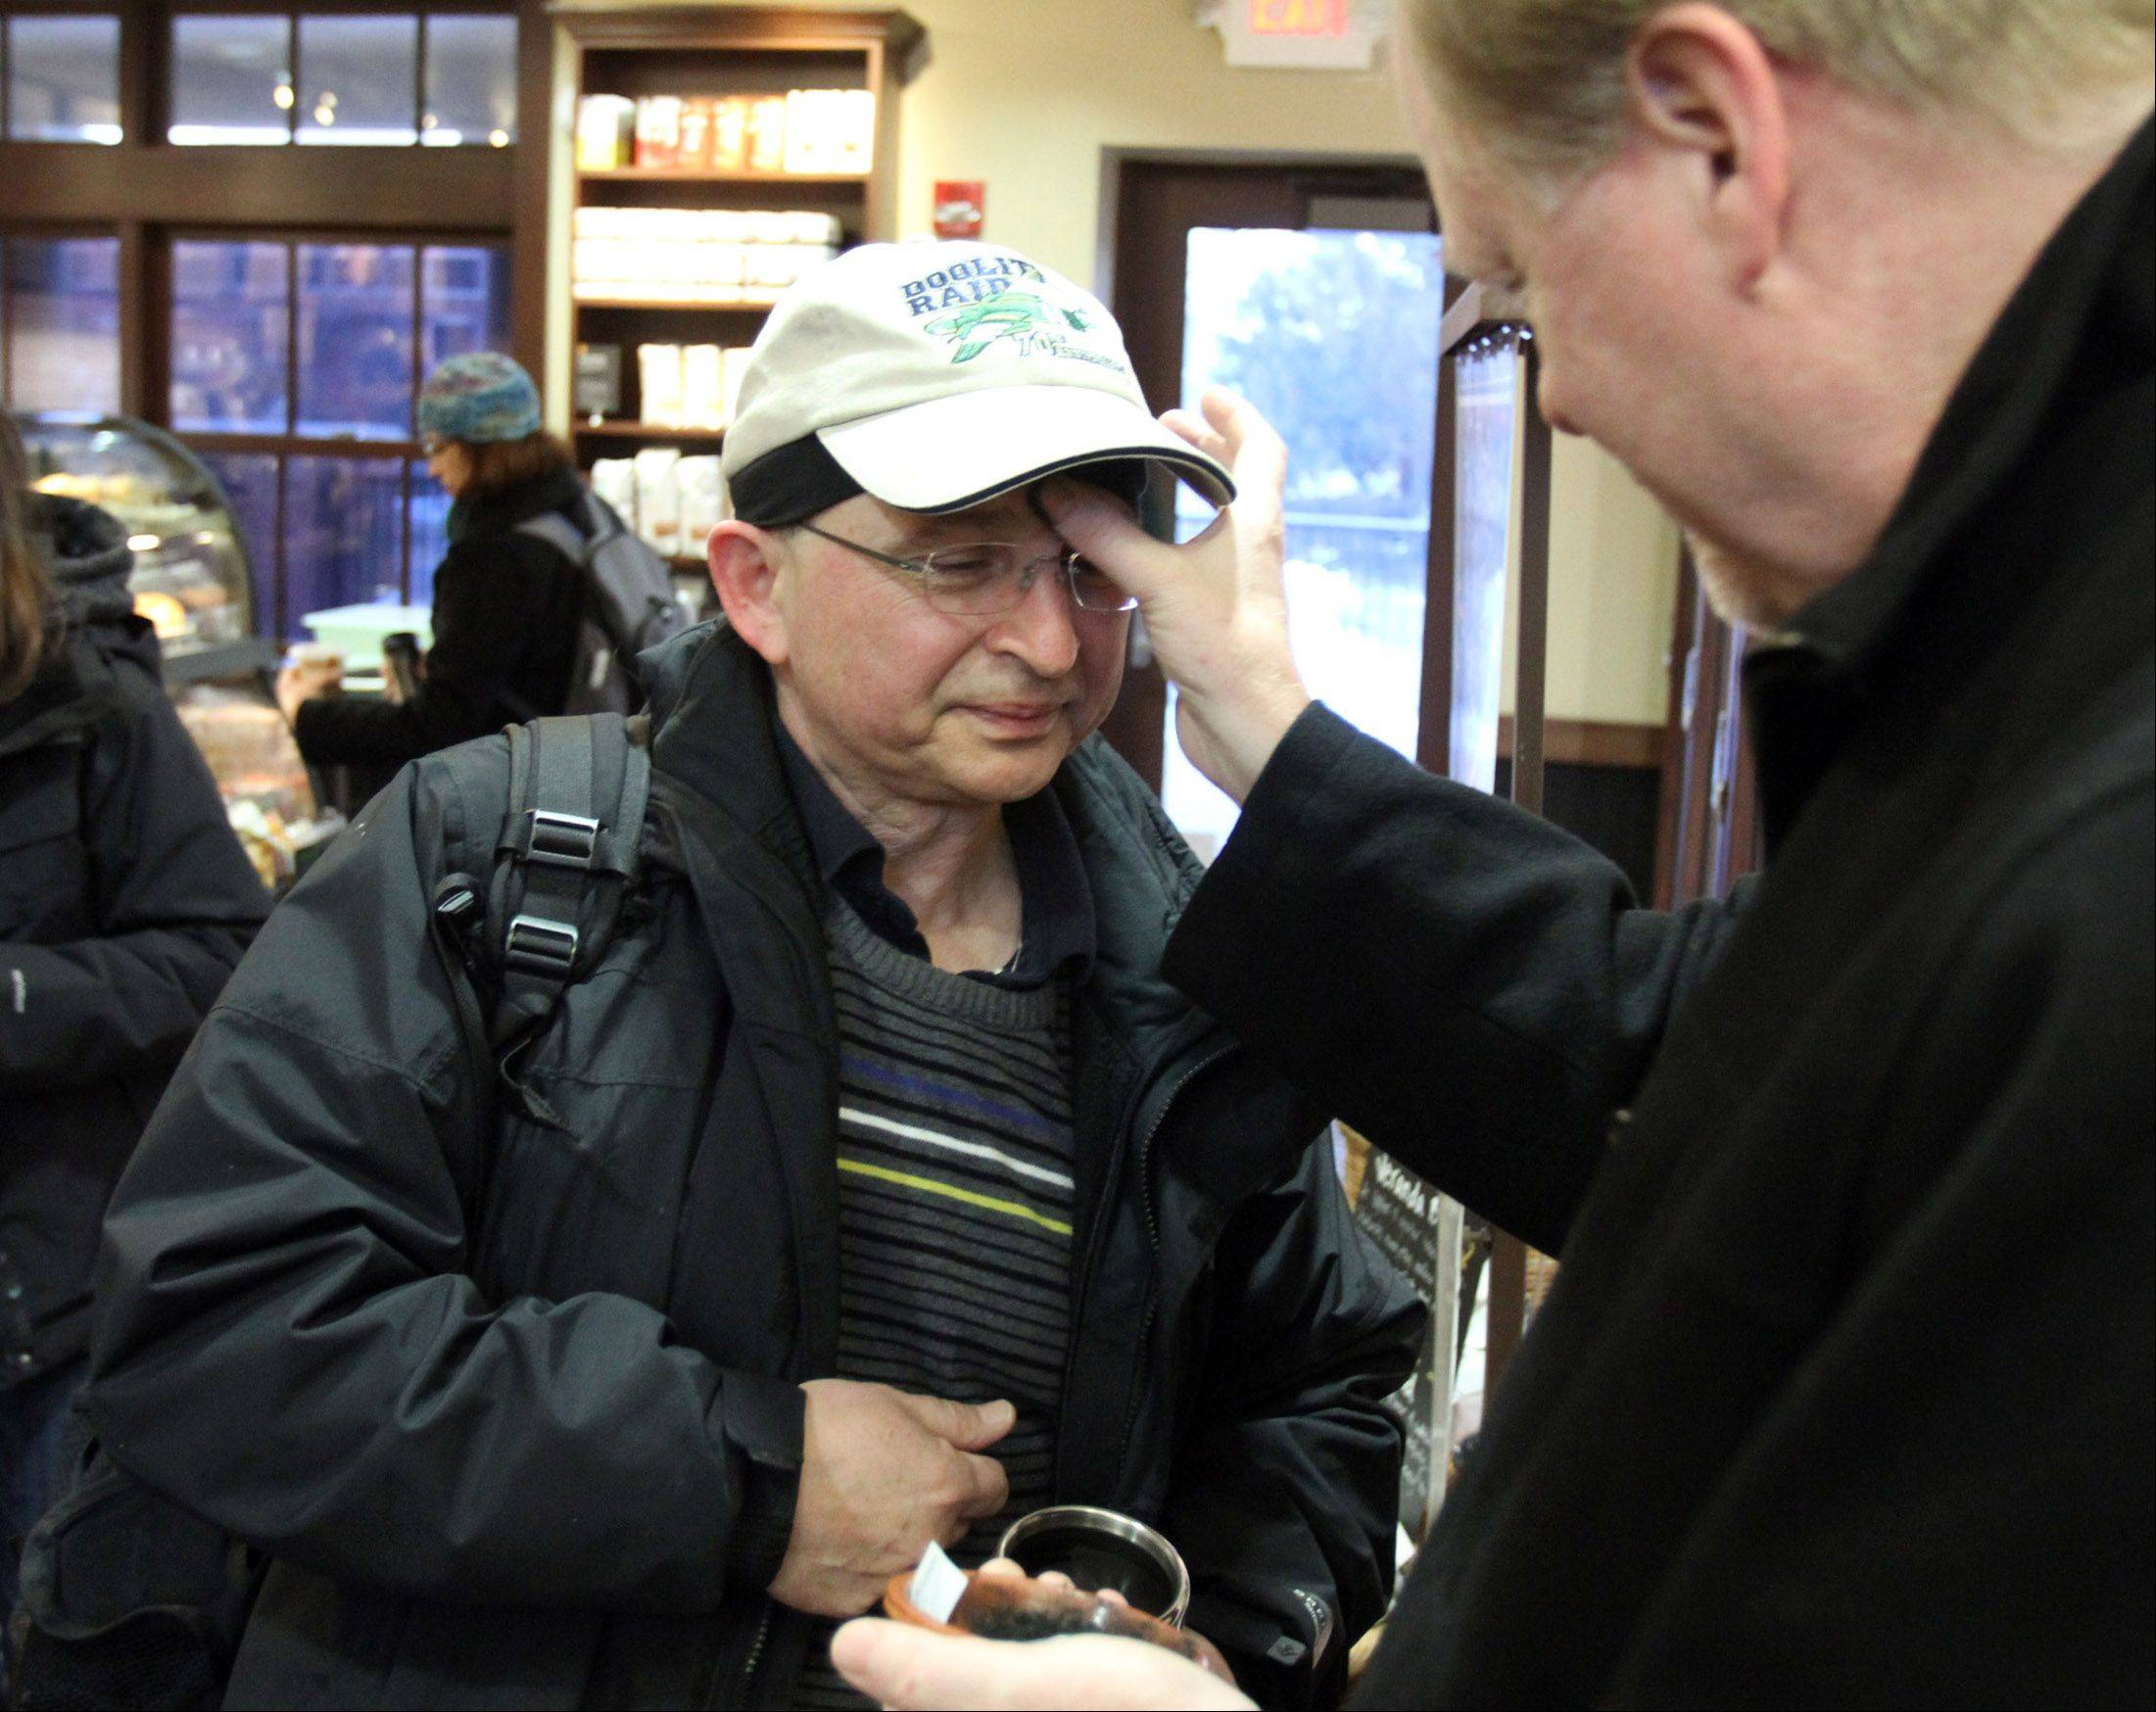 The Rev. Terry Keehan of Holy Family Catholic Community Church in Inverness gives Roman Golash of Palatine ashes for Ash Wednesday inside the Palatine train station.